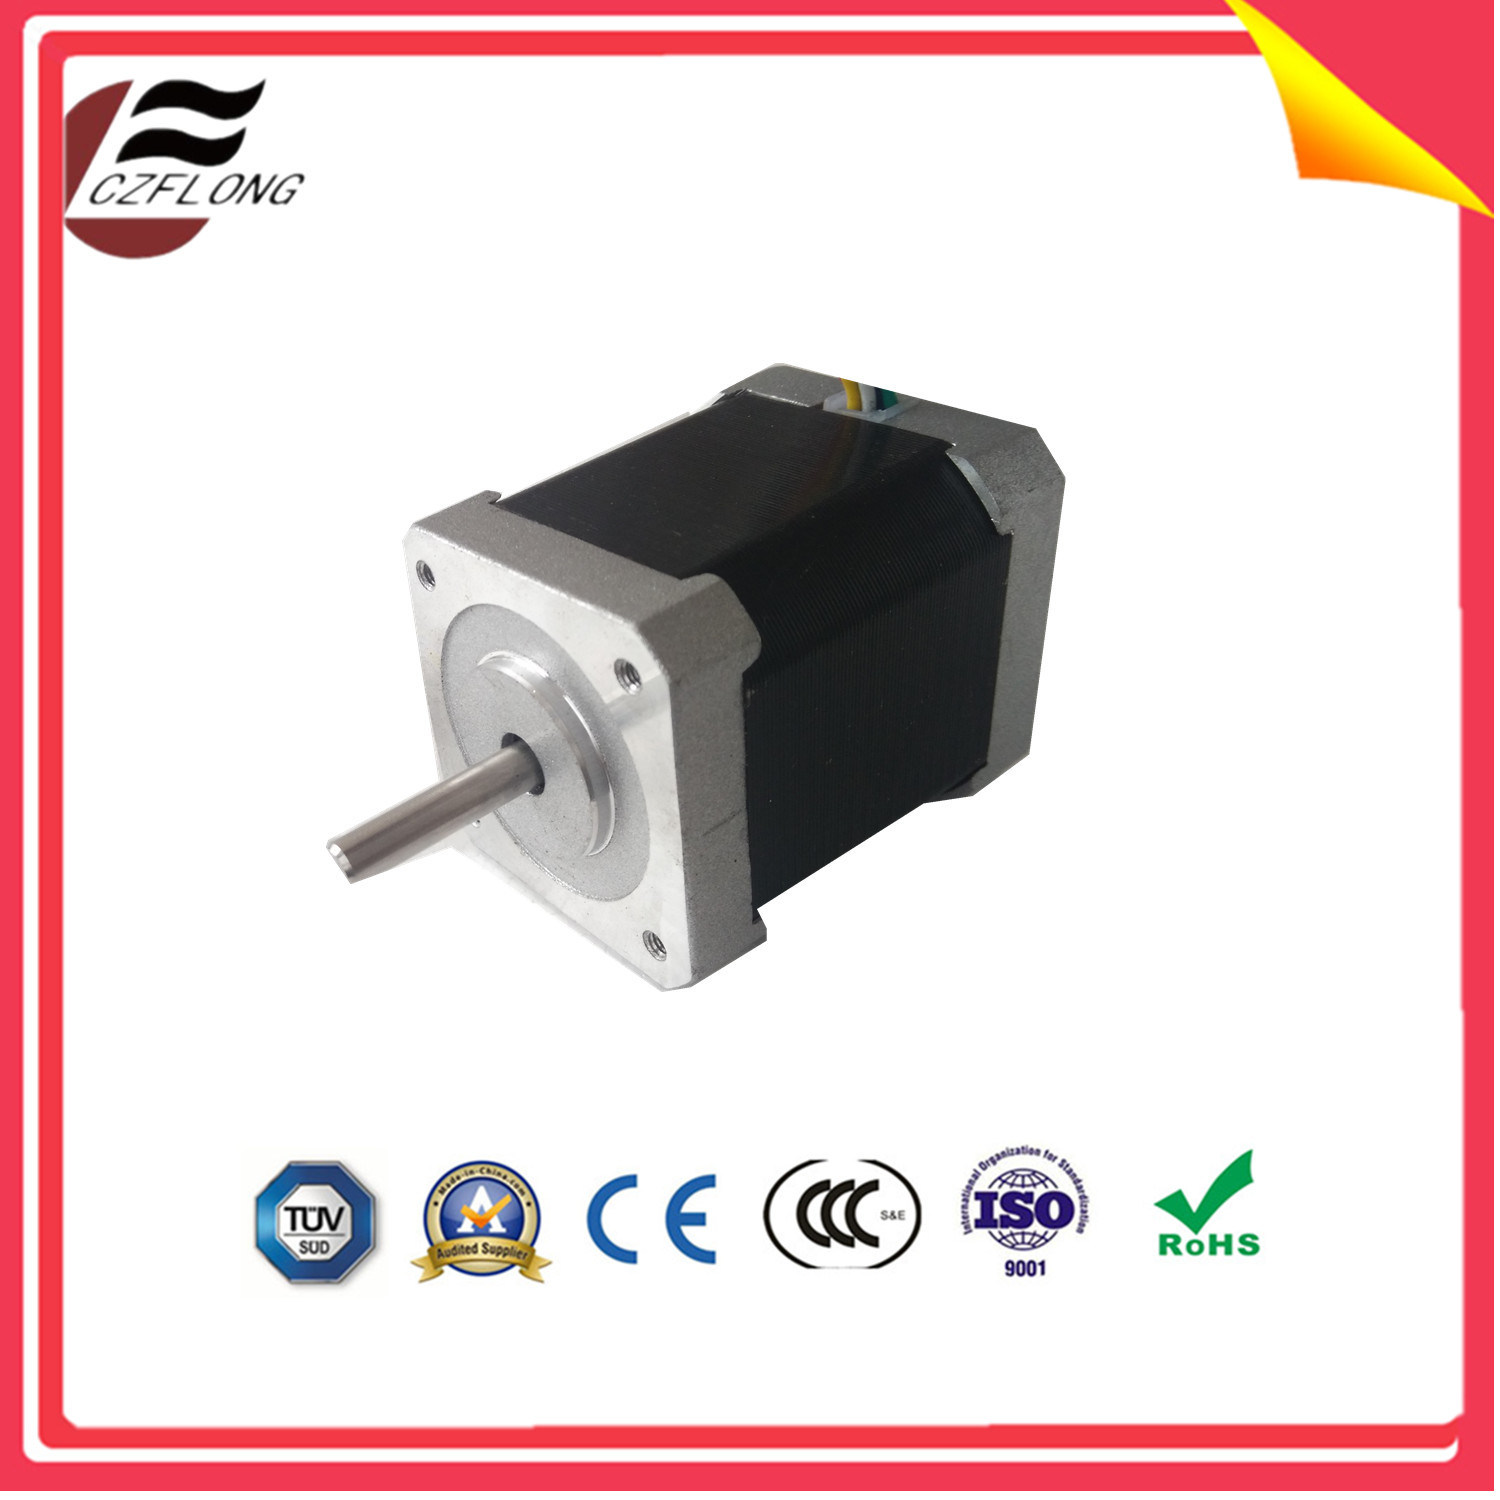 China Generator Electric Stepper Stepping Servo Brushless Dc Motor Bldc Cnc Machine Wiring Schematic For Fan Sewing Micro